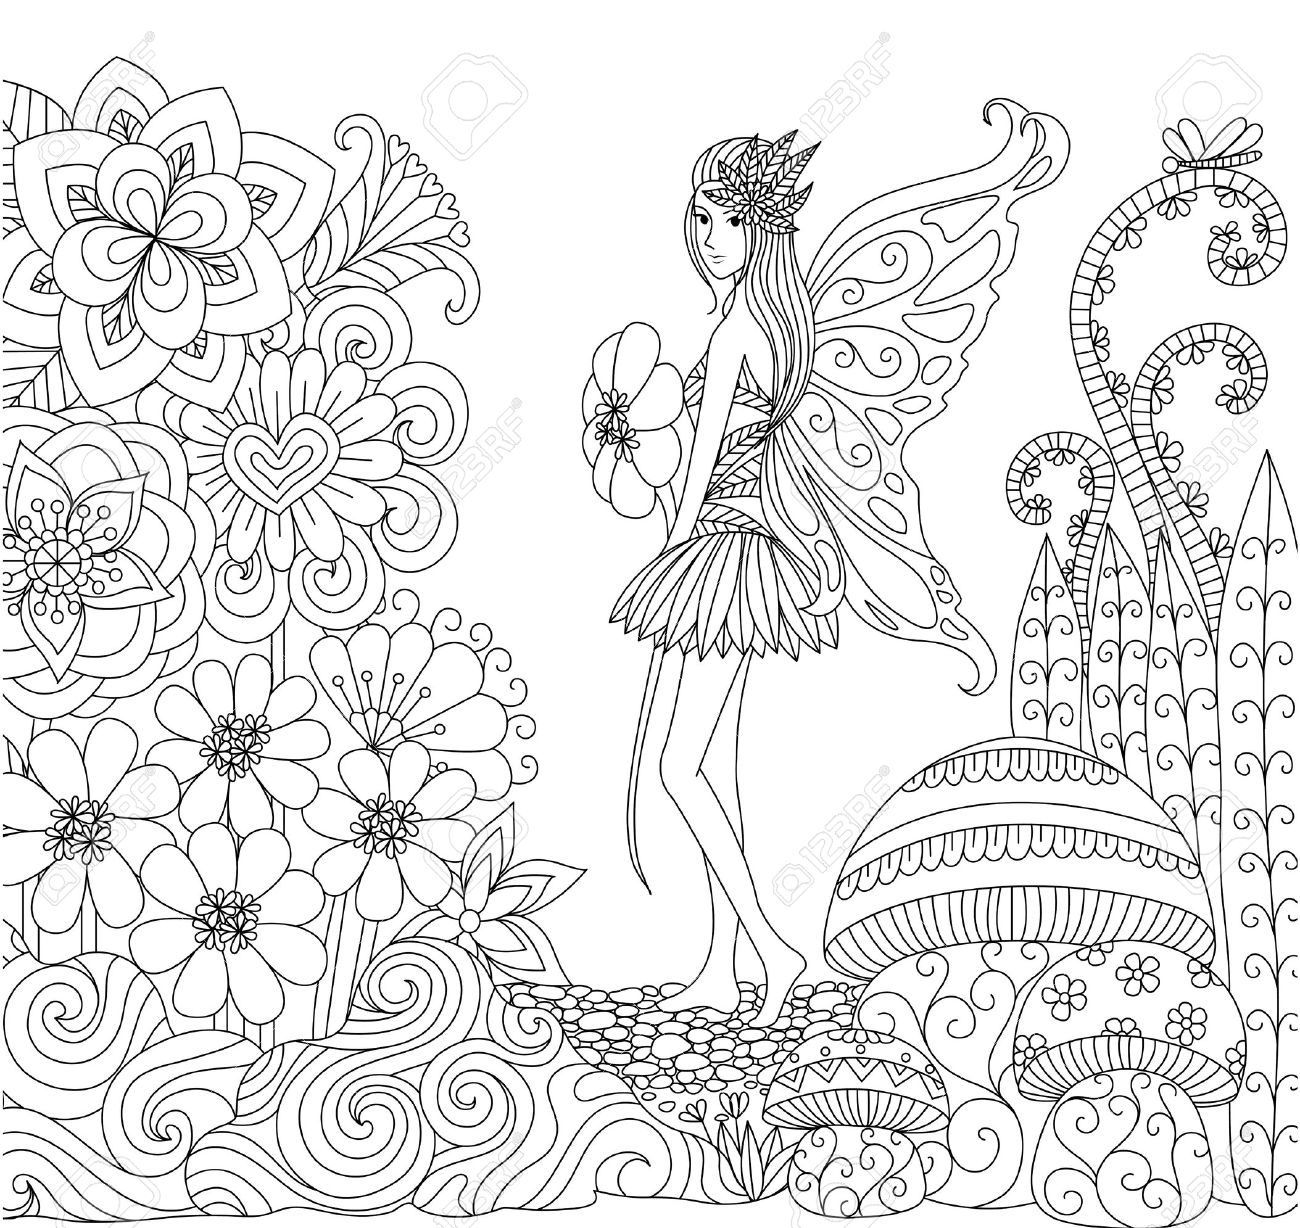 Hand Drawn Fairy Walking In Flower Land For Coloring Book For ...